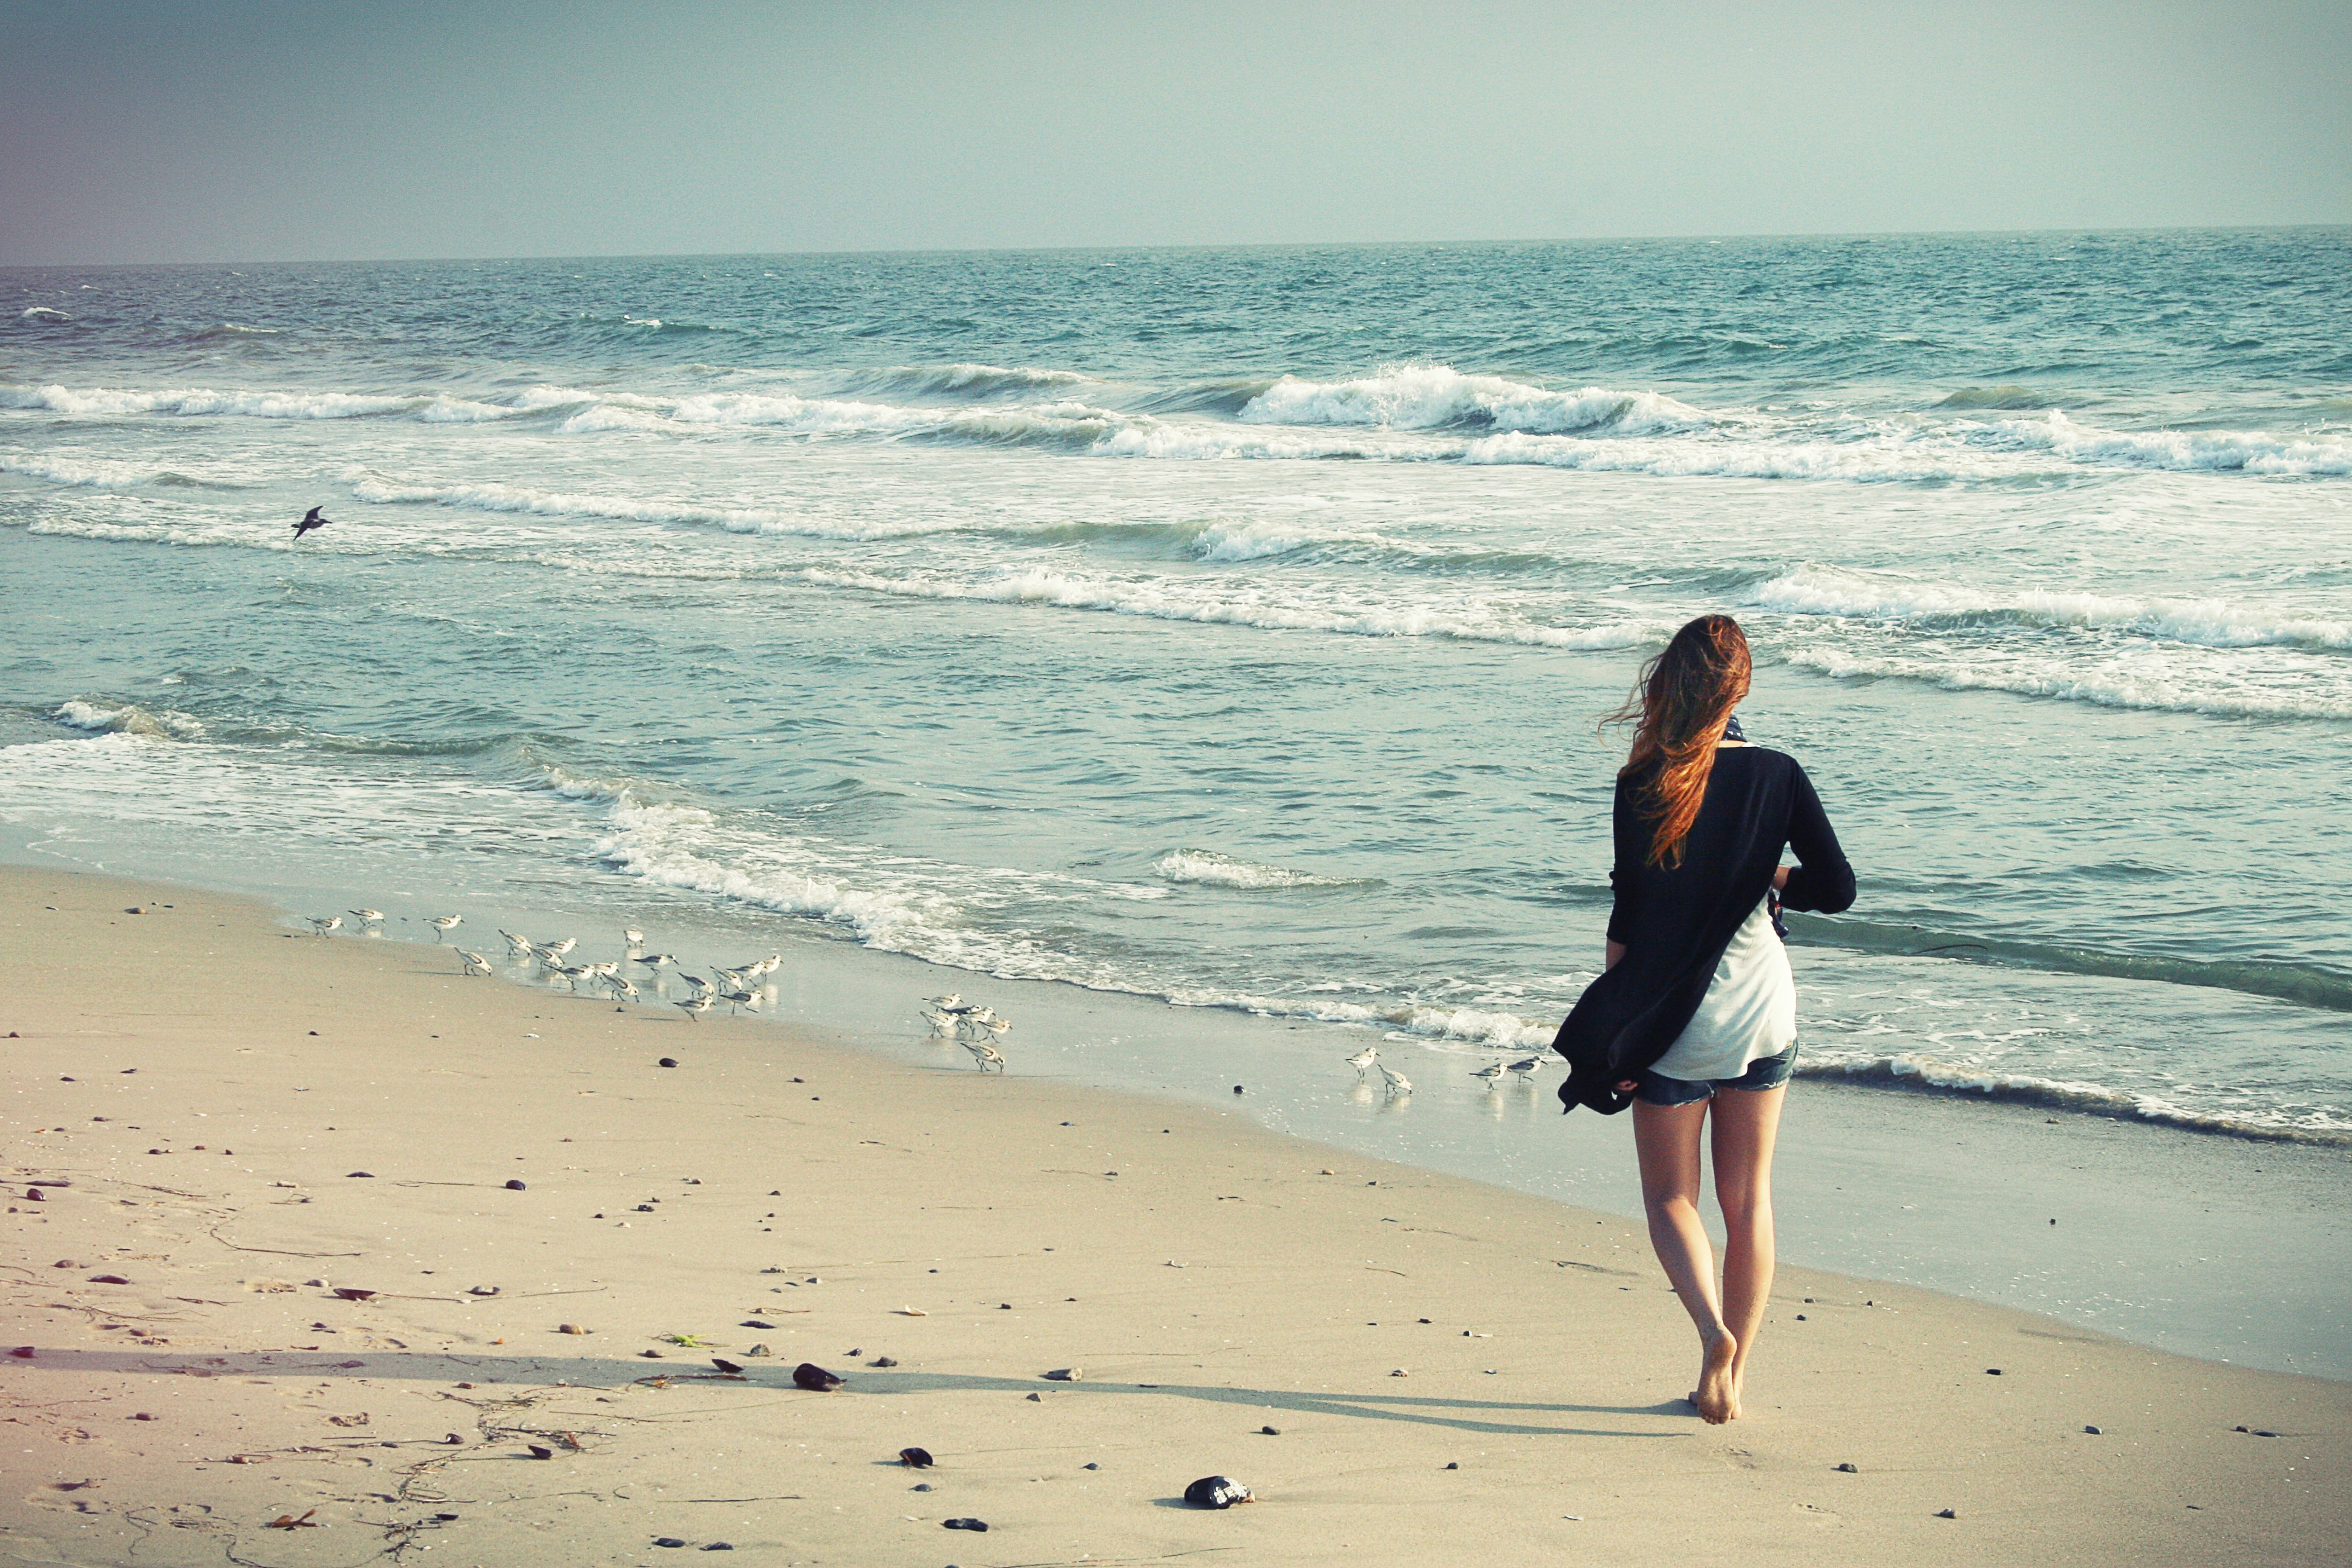 Woman walking on a sand beach coastline filled with seagulls at Venice Beach